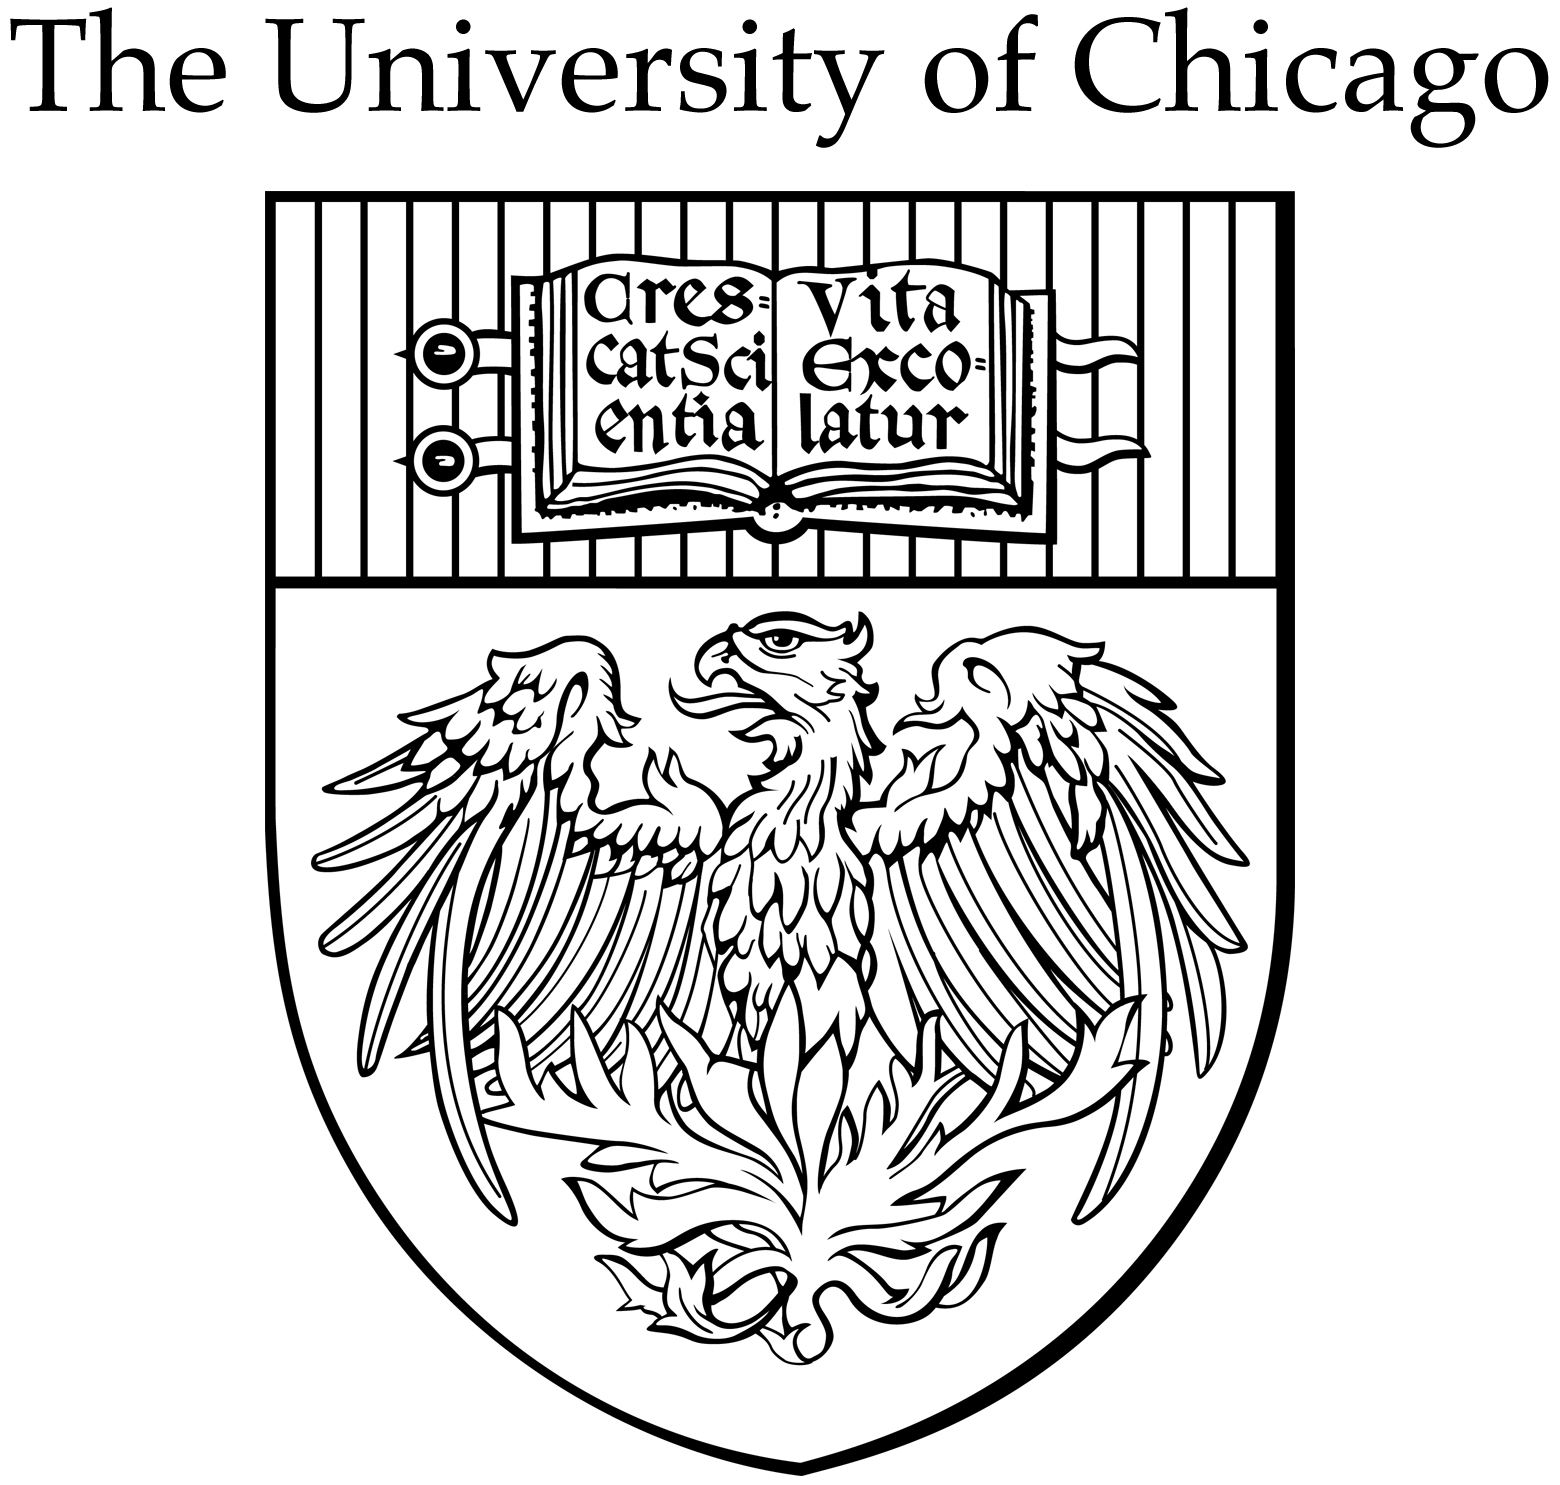 university of chicago admissions essays View essay questions required to complete an application for admission to the executive mba program at chicago booth you can submit your answers via our online.